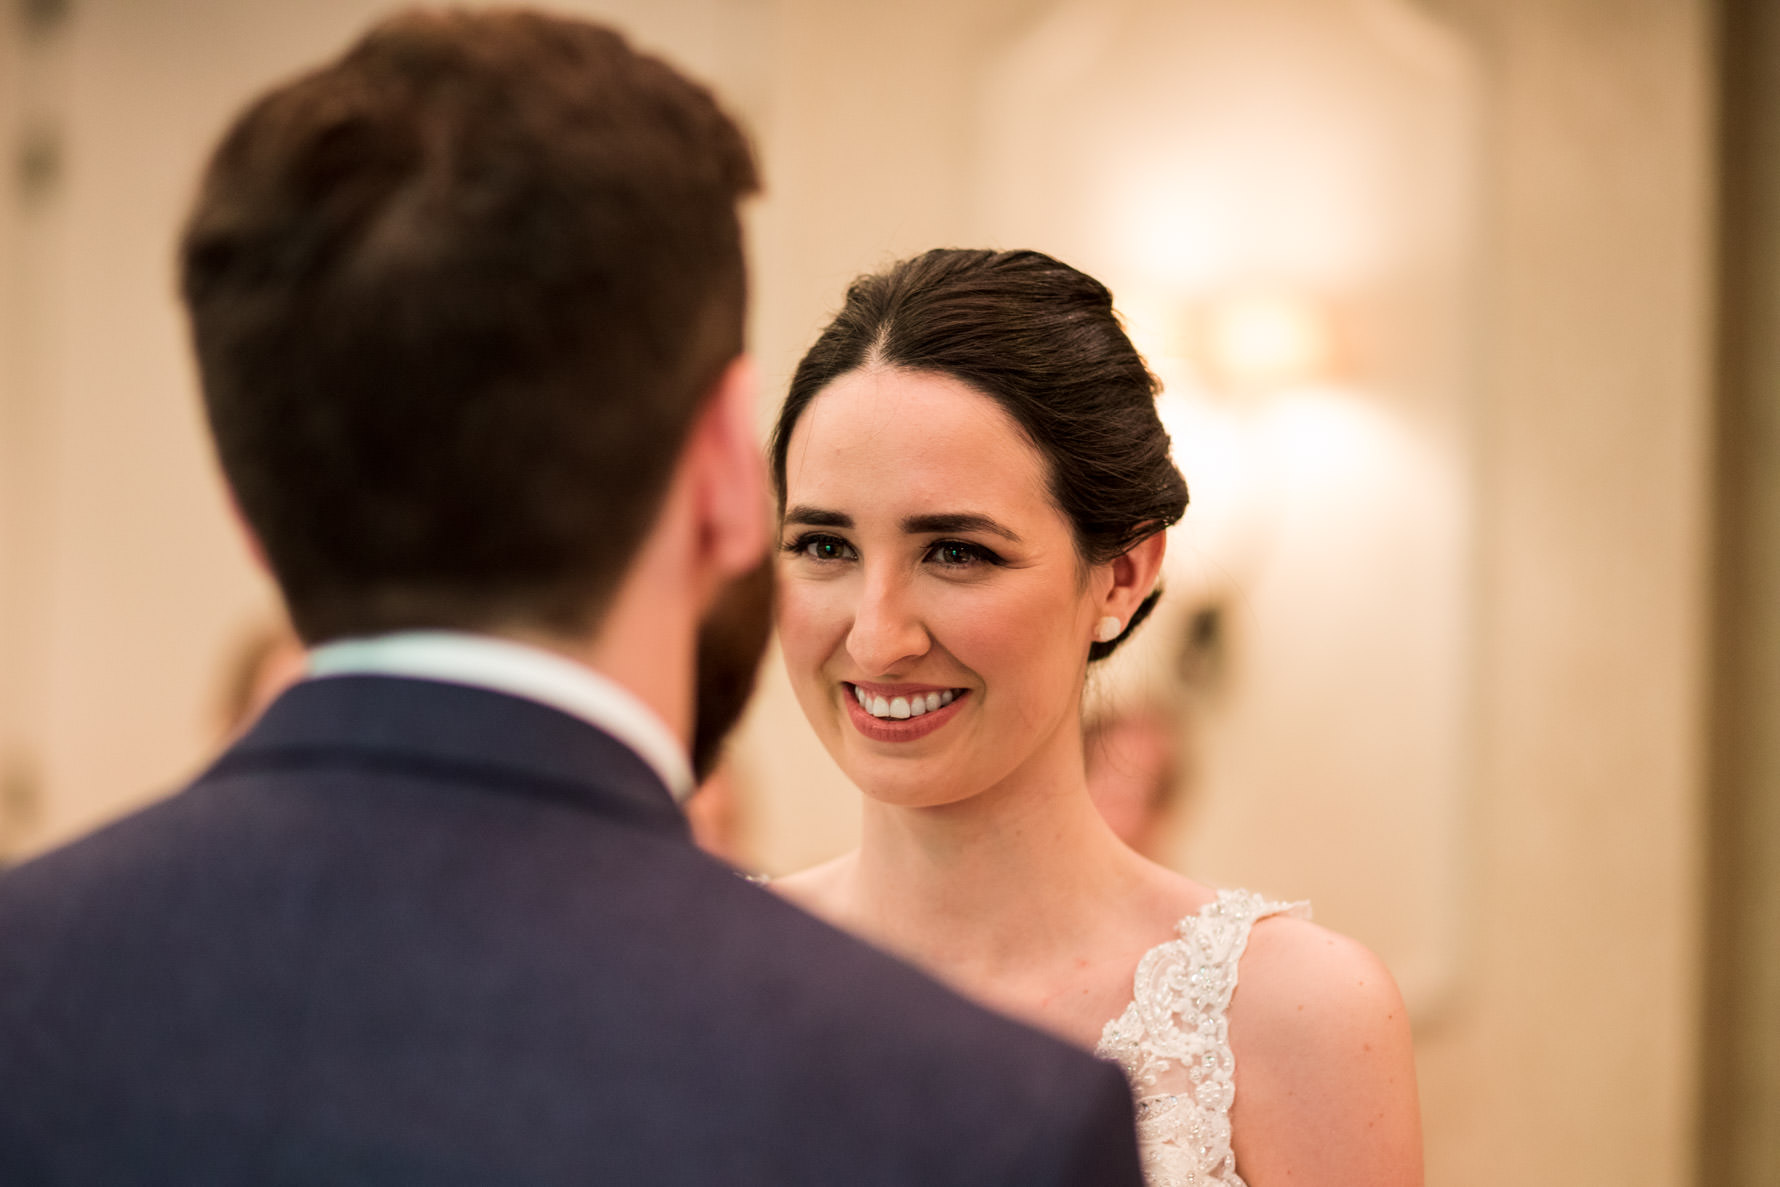 Dark haired bride smiling at groom during wedding ceremony